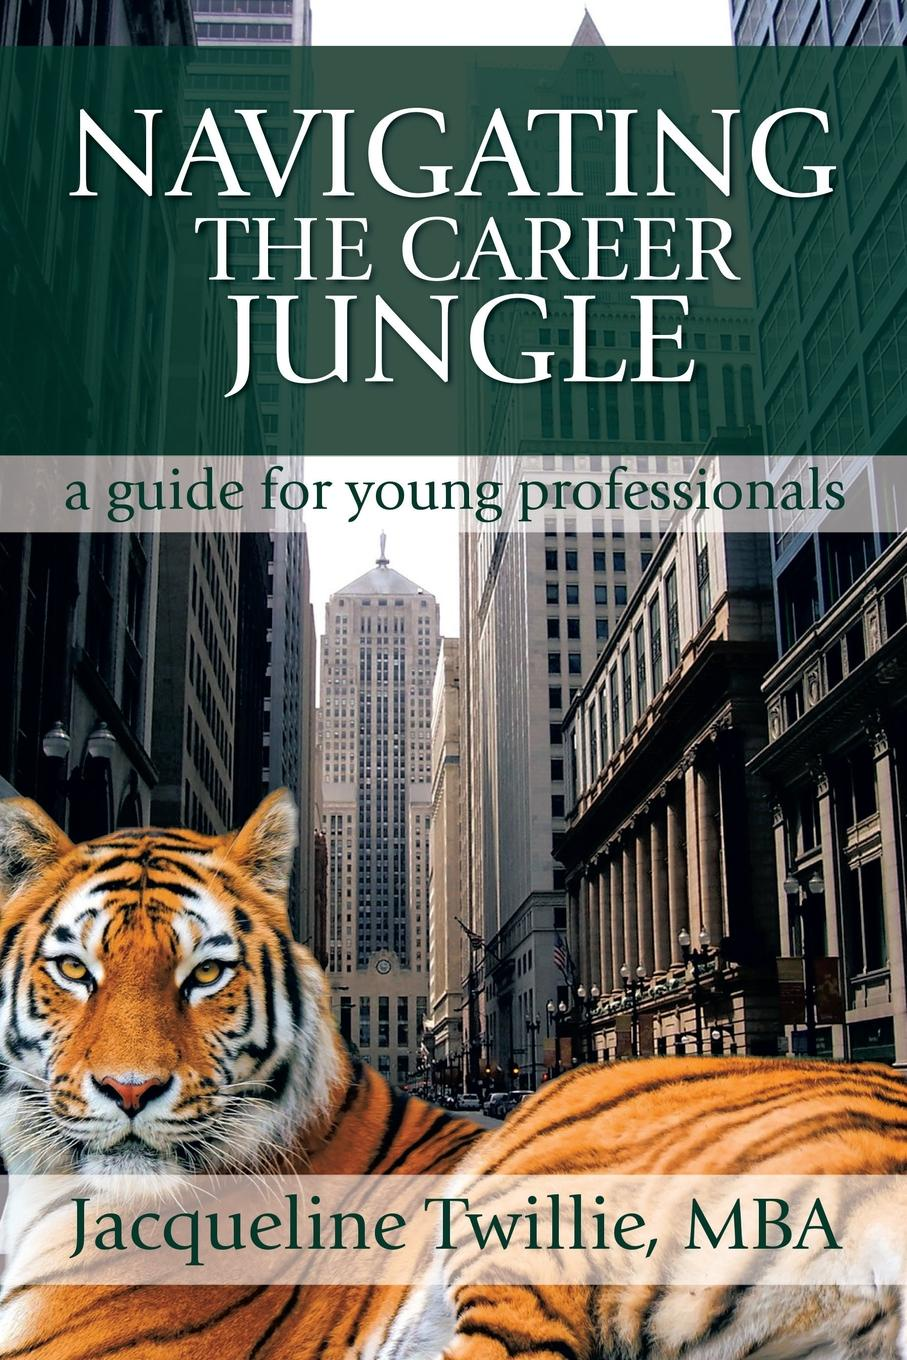 Jacqueline Twillie Navigating the Career Jungle. A Guide for Young Professionals sundar christopher a navigating graduate school and beyond a career guide for graduate students and a must read for every advisor